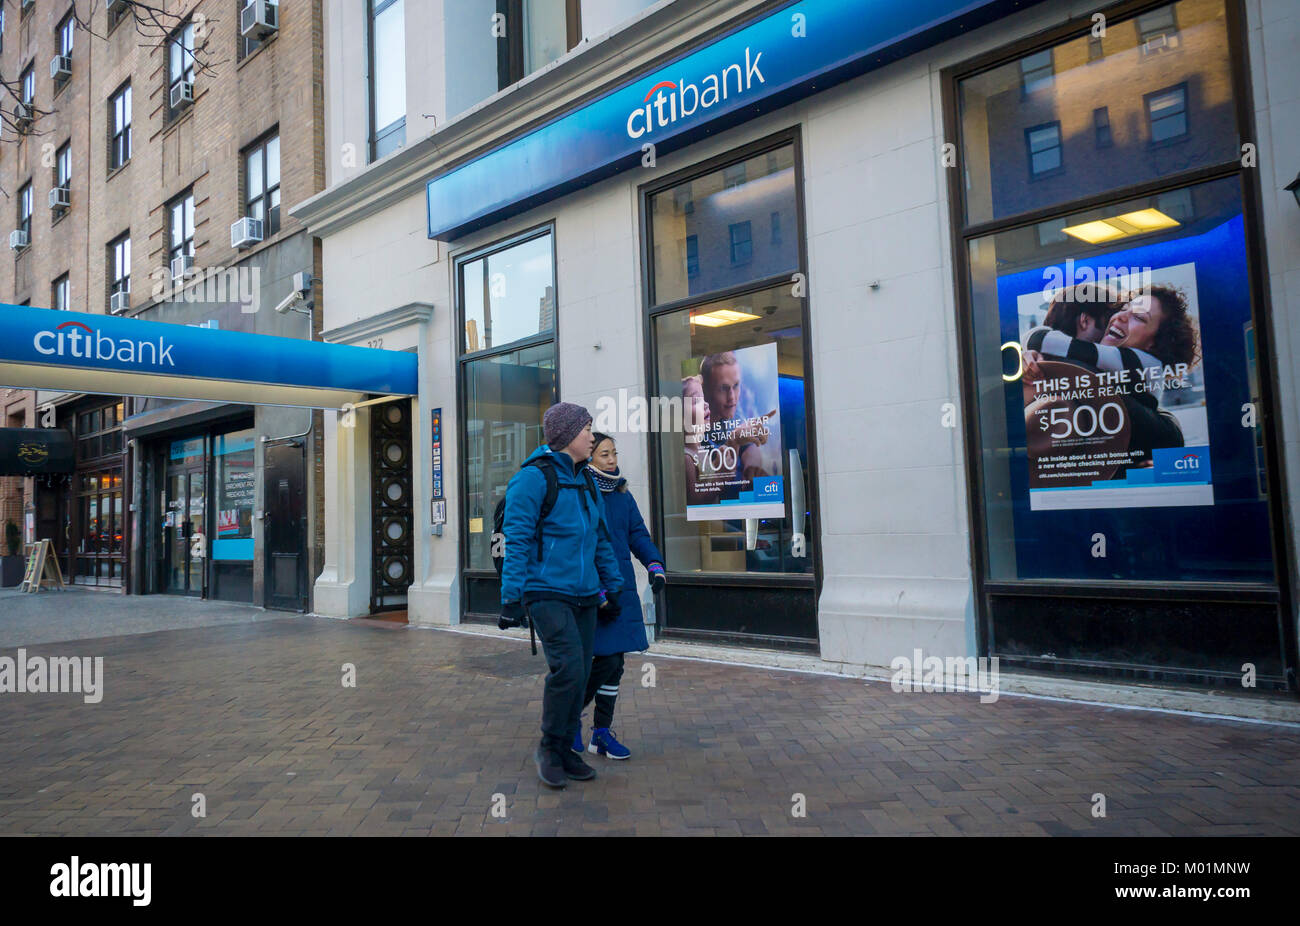 A Citibank branch in Chelsea in New York on Monday, January 15, 2018. Citigroup is scheduled to release its fourth - Stock Image